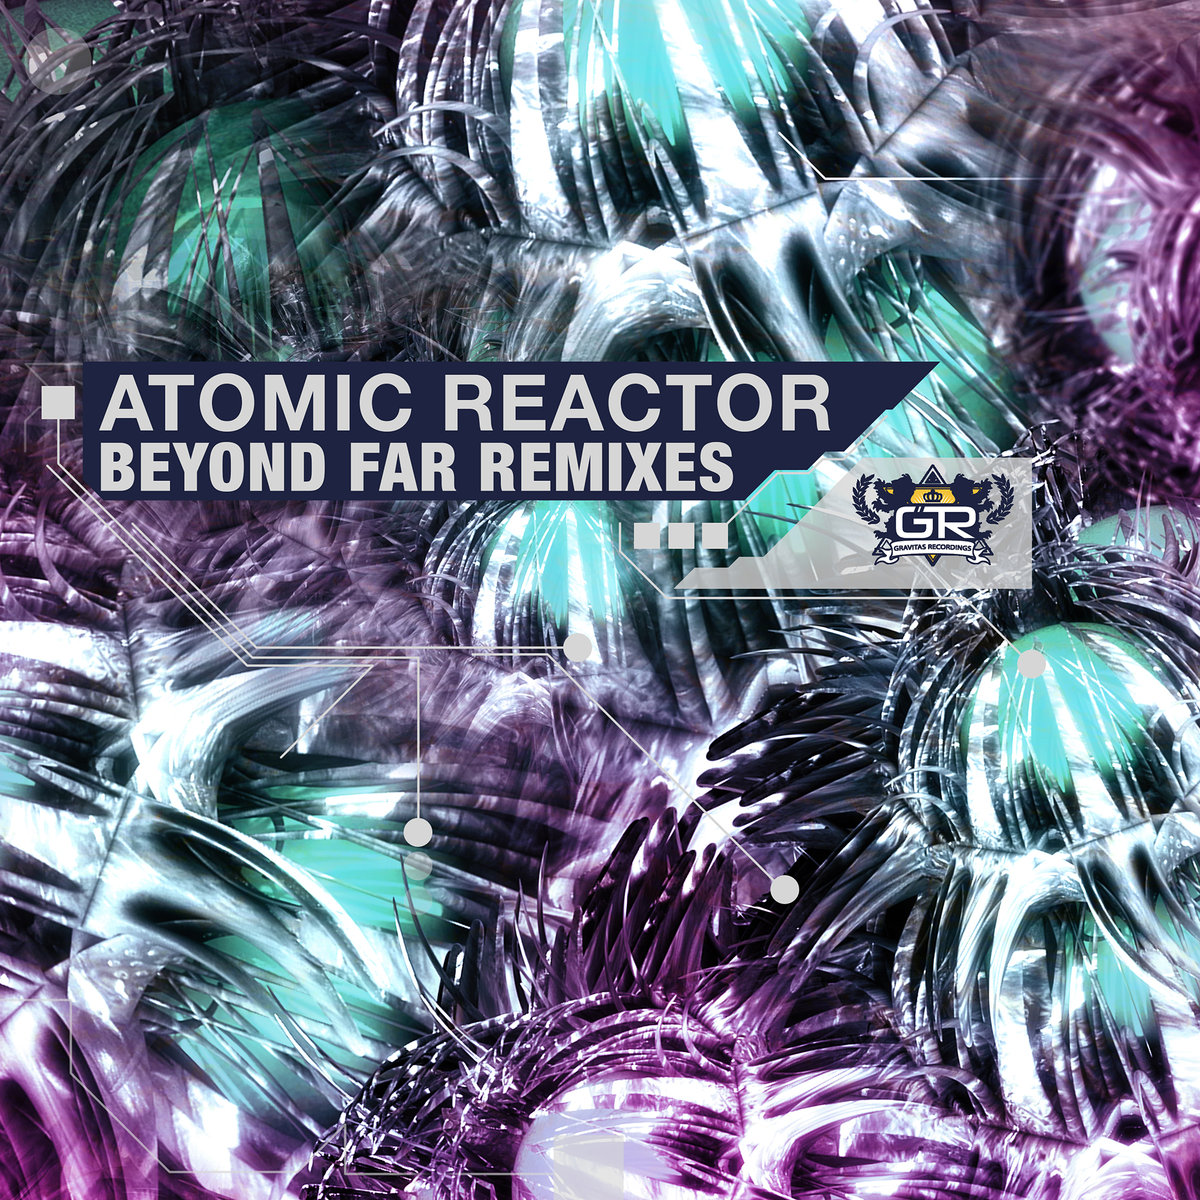 Atomic Reactor - Beyond Far (Encanti Remix) @ 'Beyond Far Remixes' album (Austin)